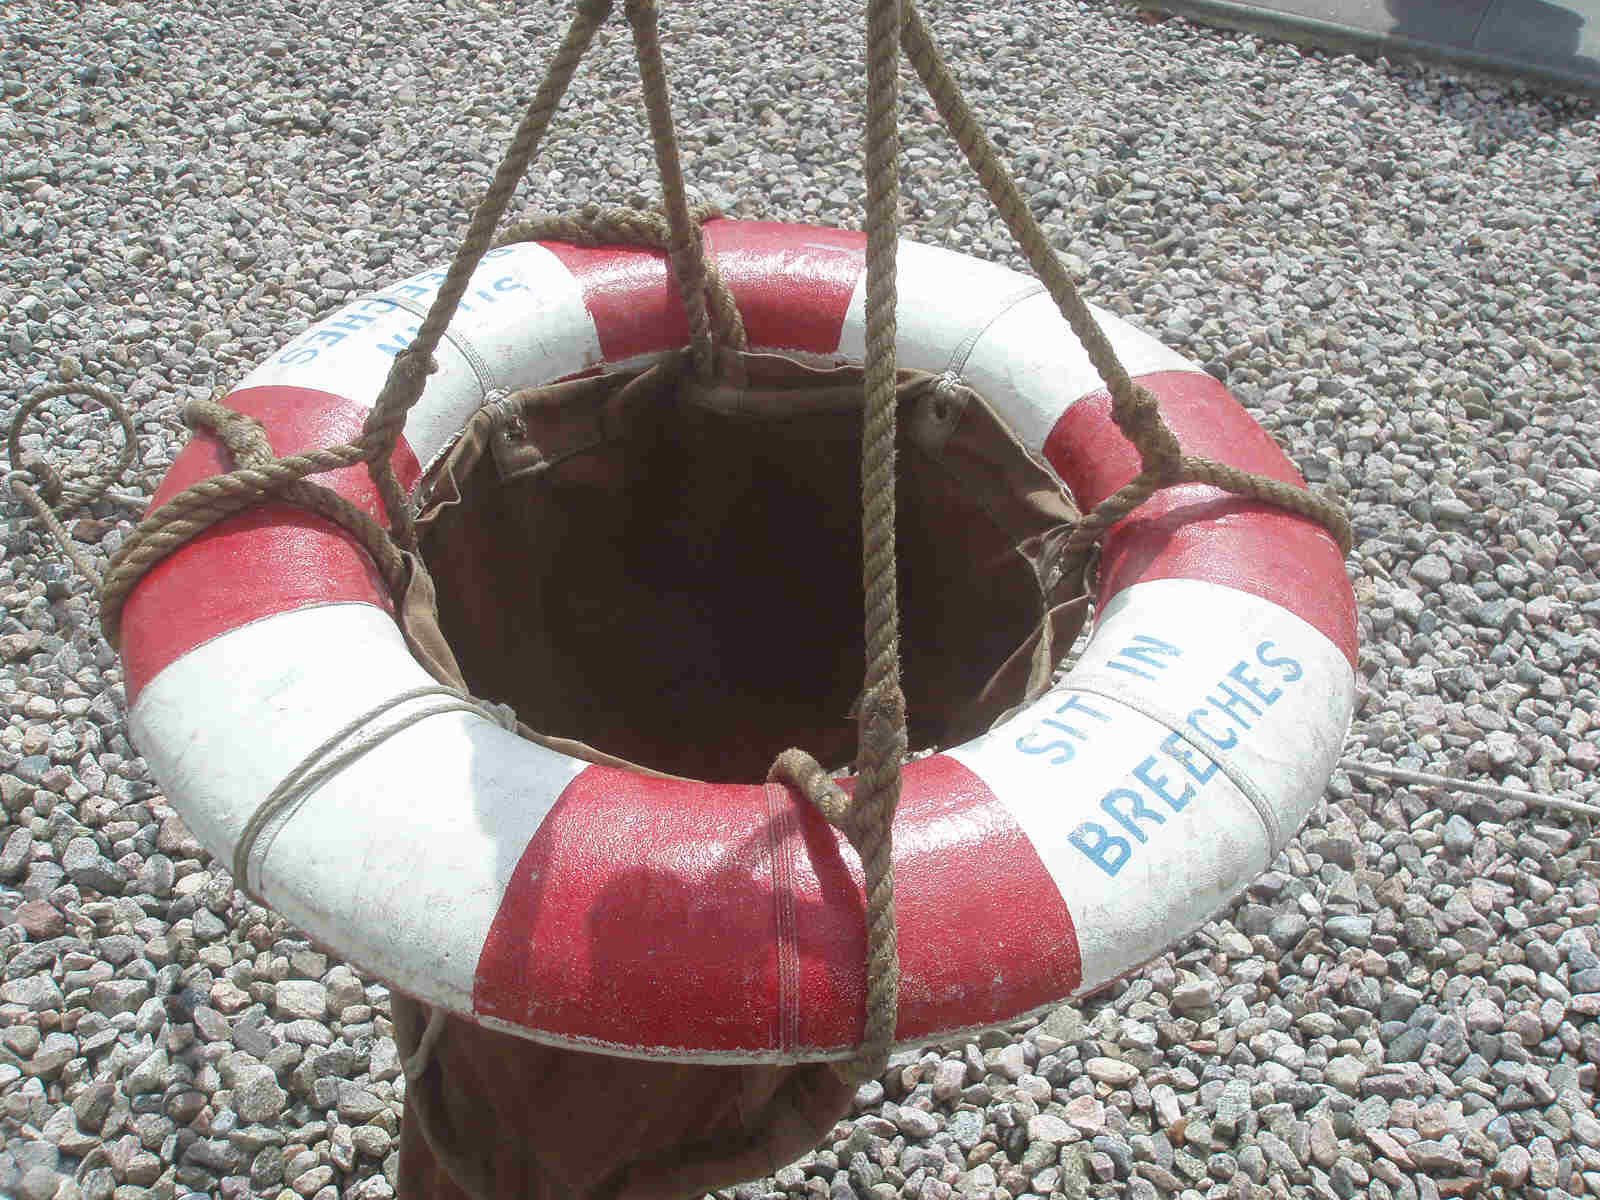 Breeches buoy - rescue apparatus of yester-year